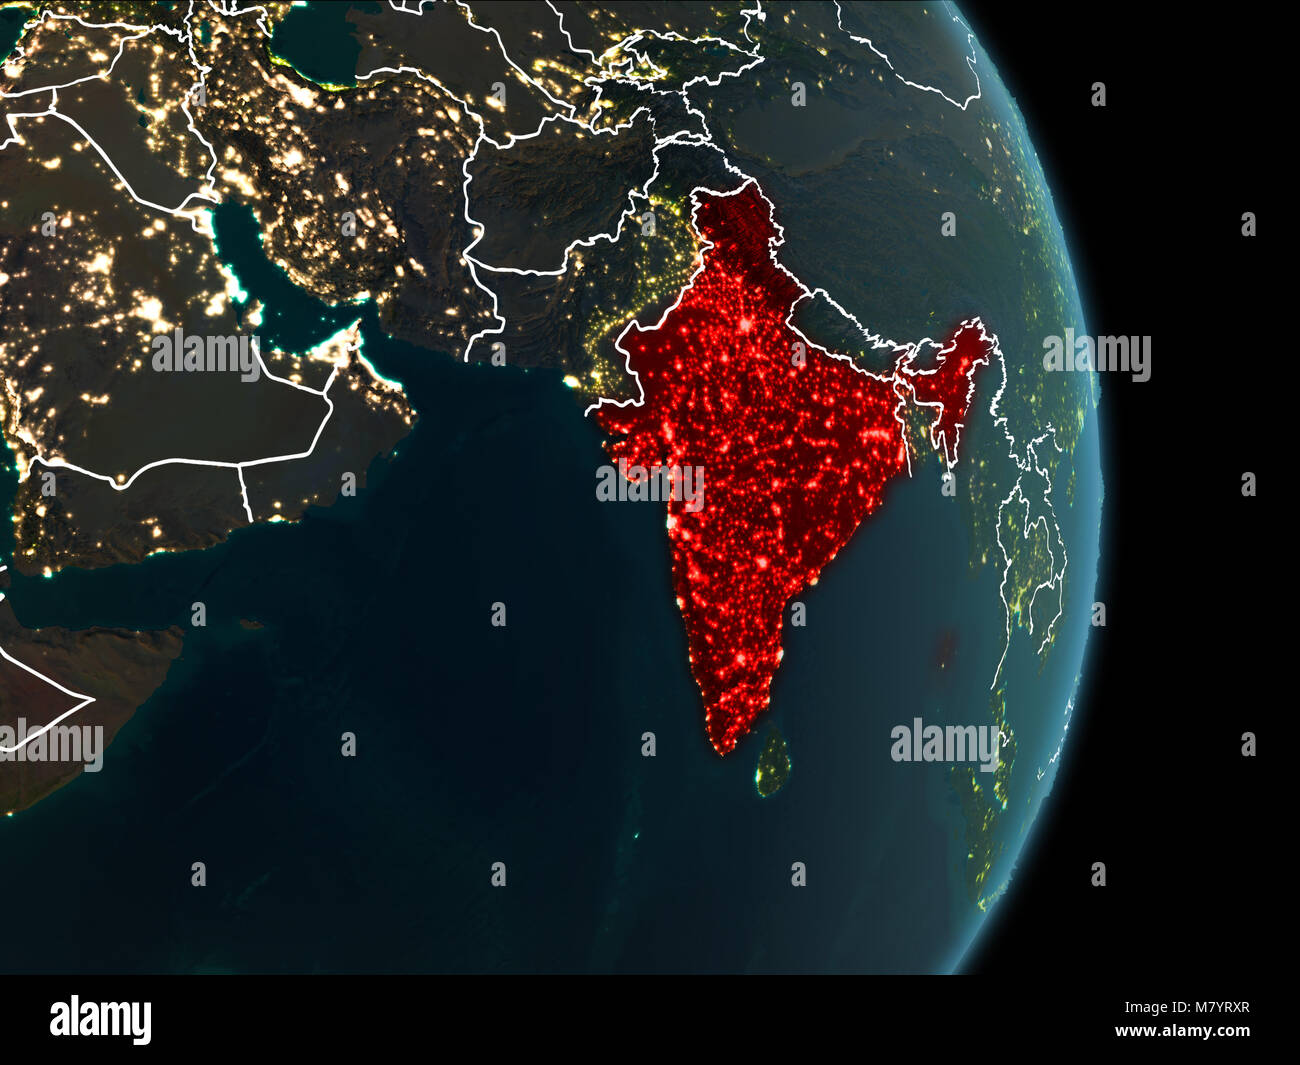 Map of india in red as seen from space on planet earth at night with map of india in red as seen from space on planet earth at night with white borderlines and city lights 3d illustration elements of this image furnis gumiabroncs